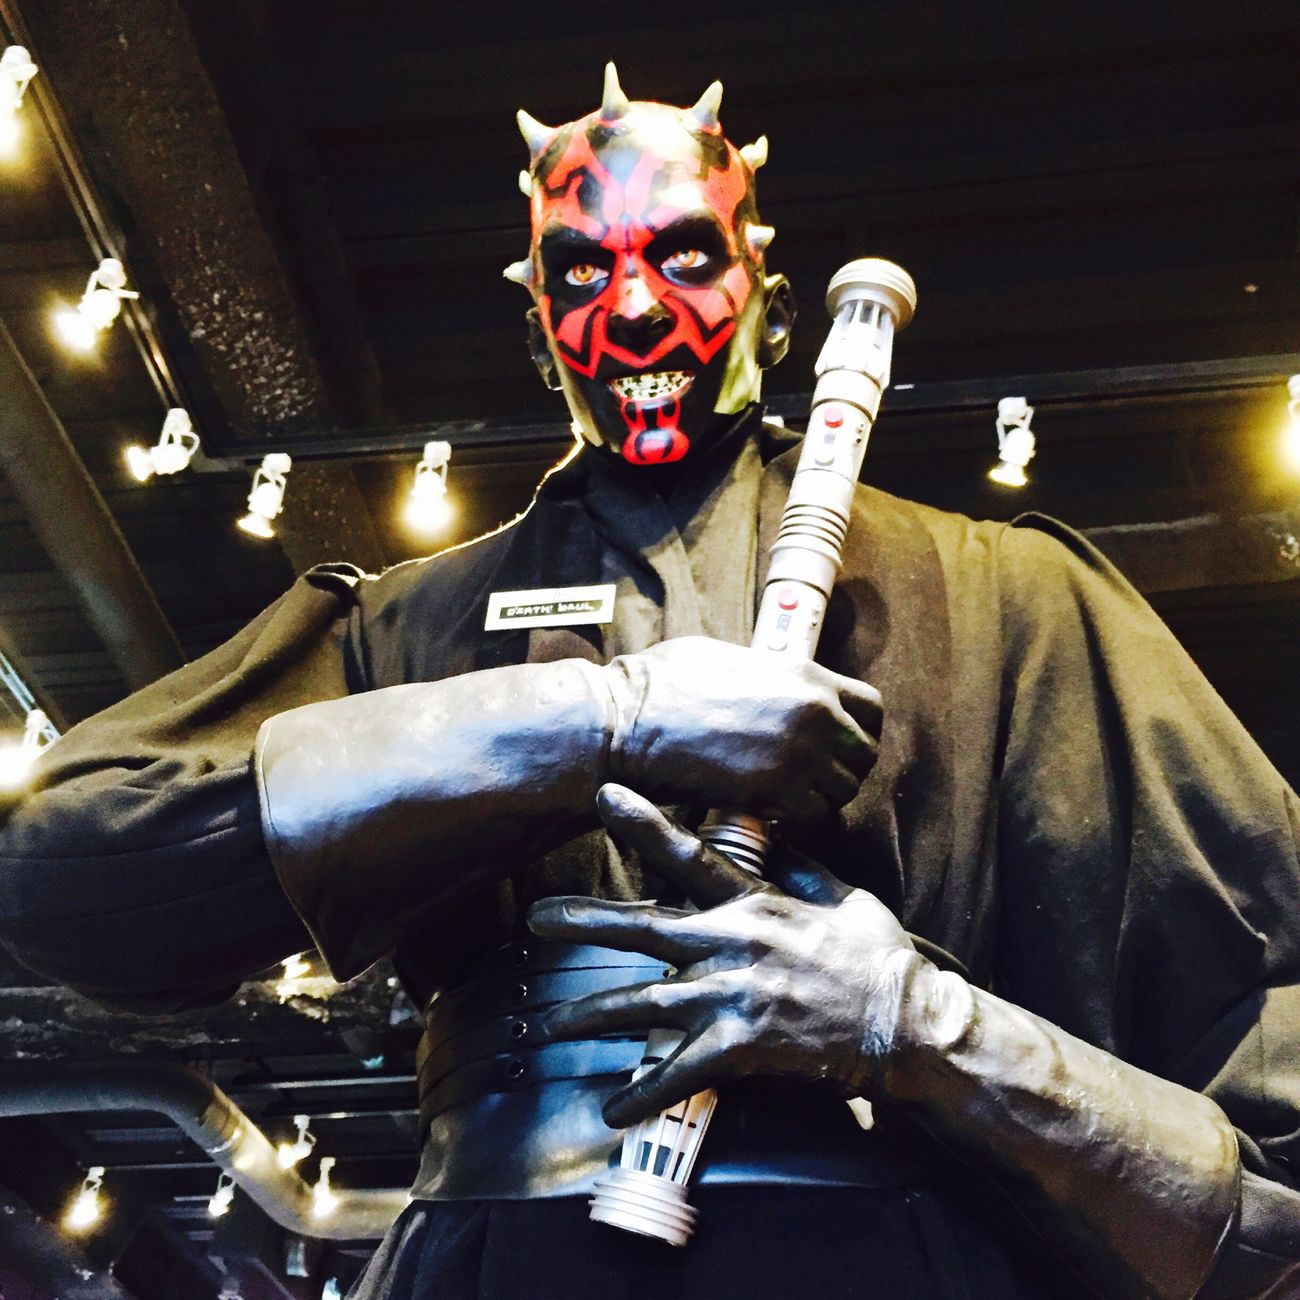 "Met ""Darth Maul""!! Can't wait episode 7? Streetphotography Taking Photos Cool Street Art Star Wars Darth Maul Movies Excited"